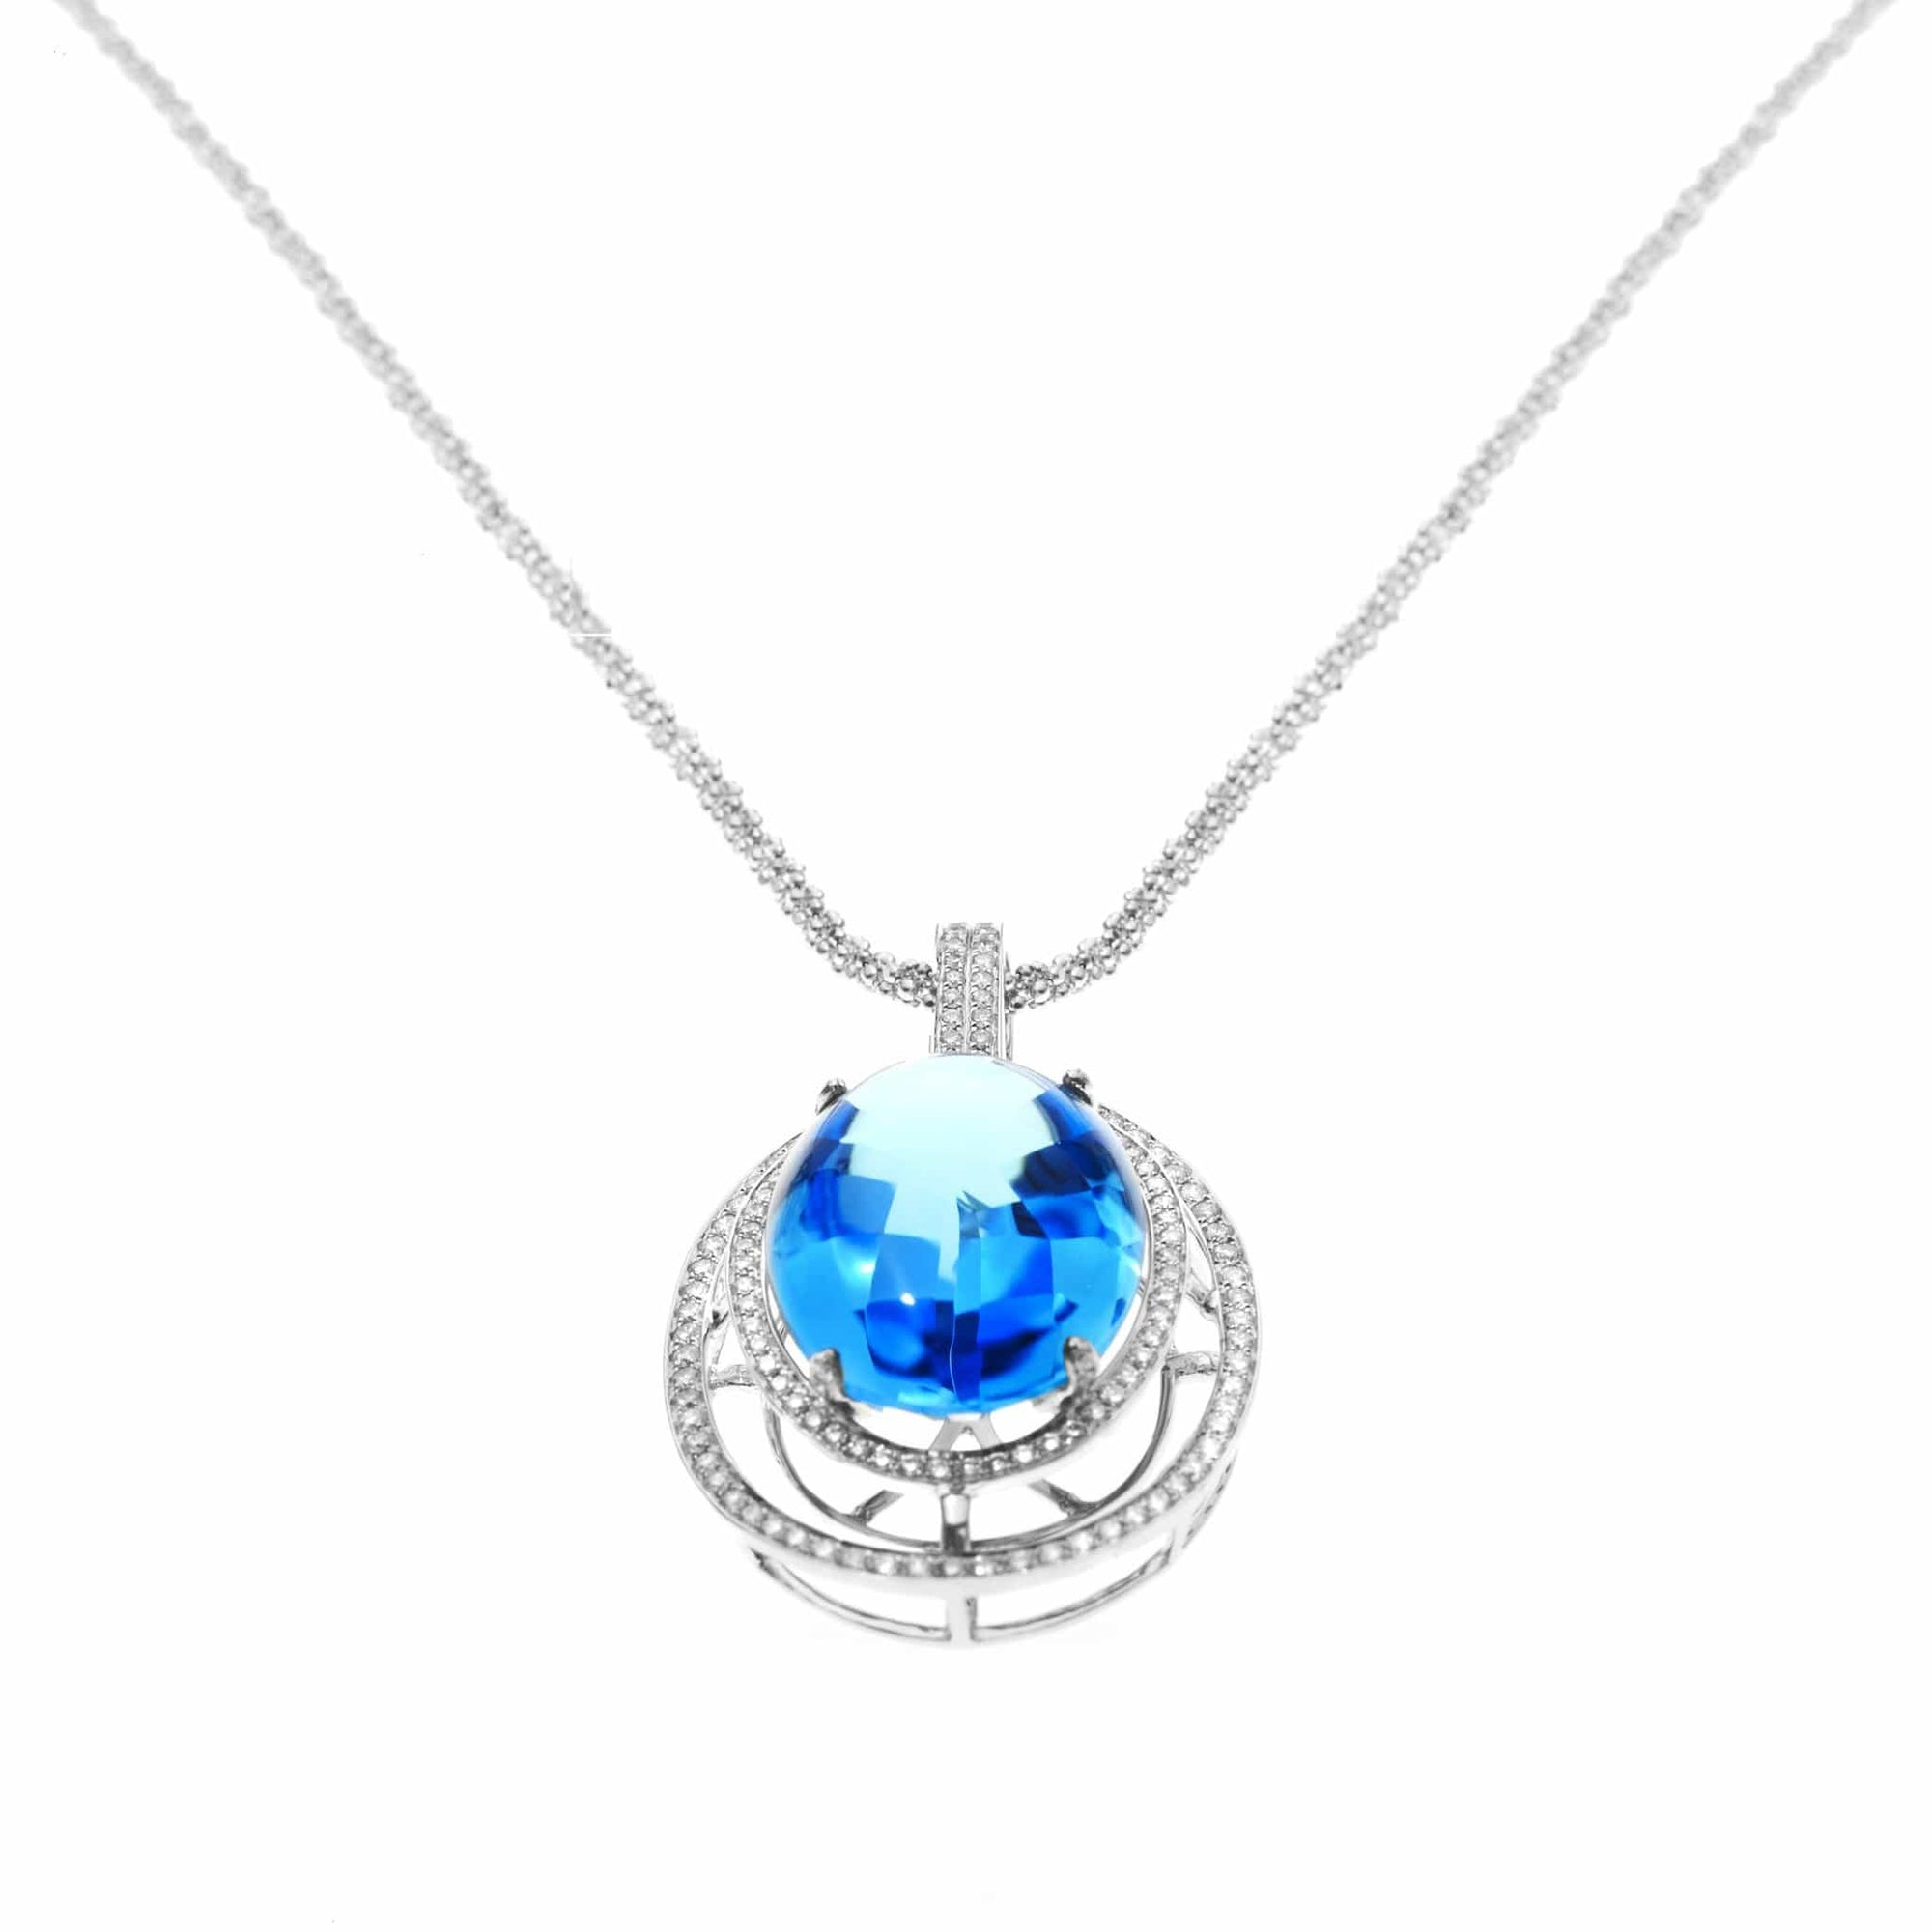 BLUE TOPAZ NECKLACE - SCINTILLATING LAGOON - Chris Aire Fine Jewelry & Timepieces